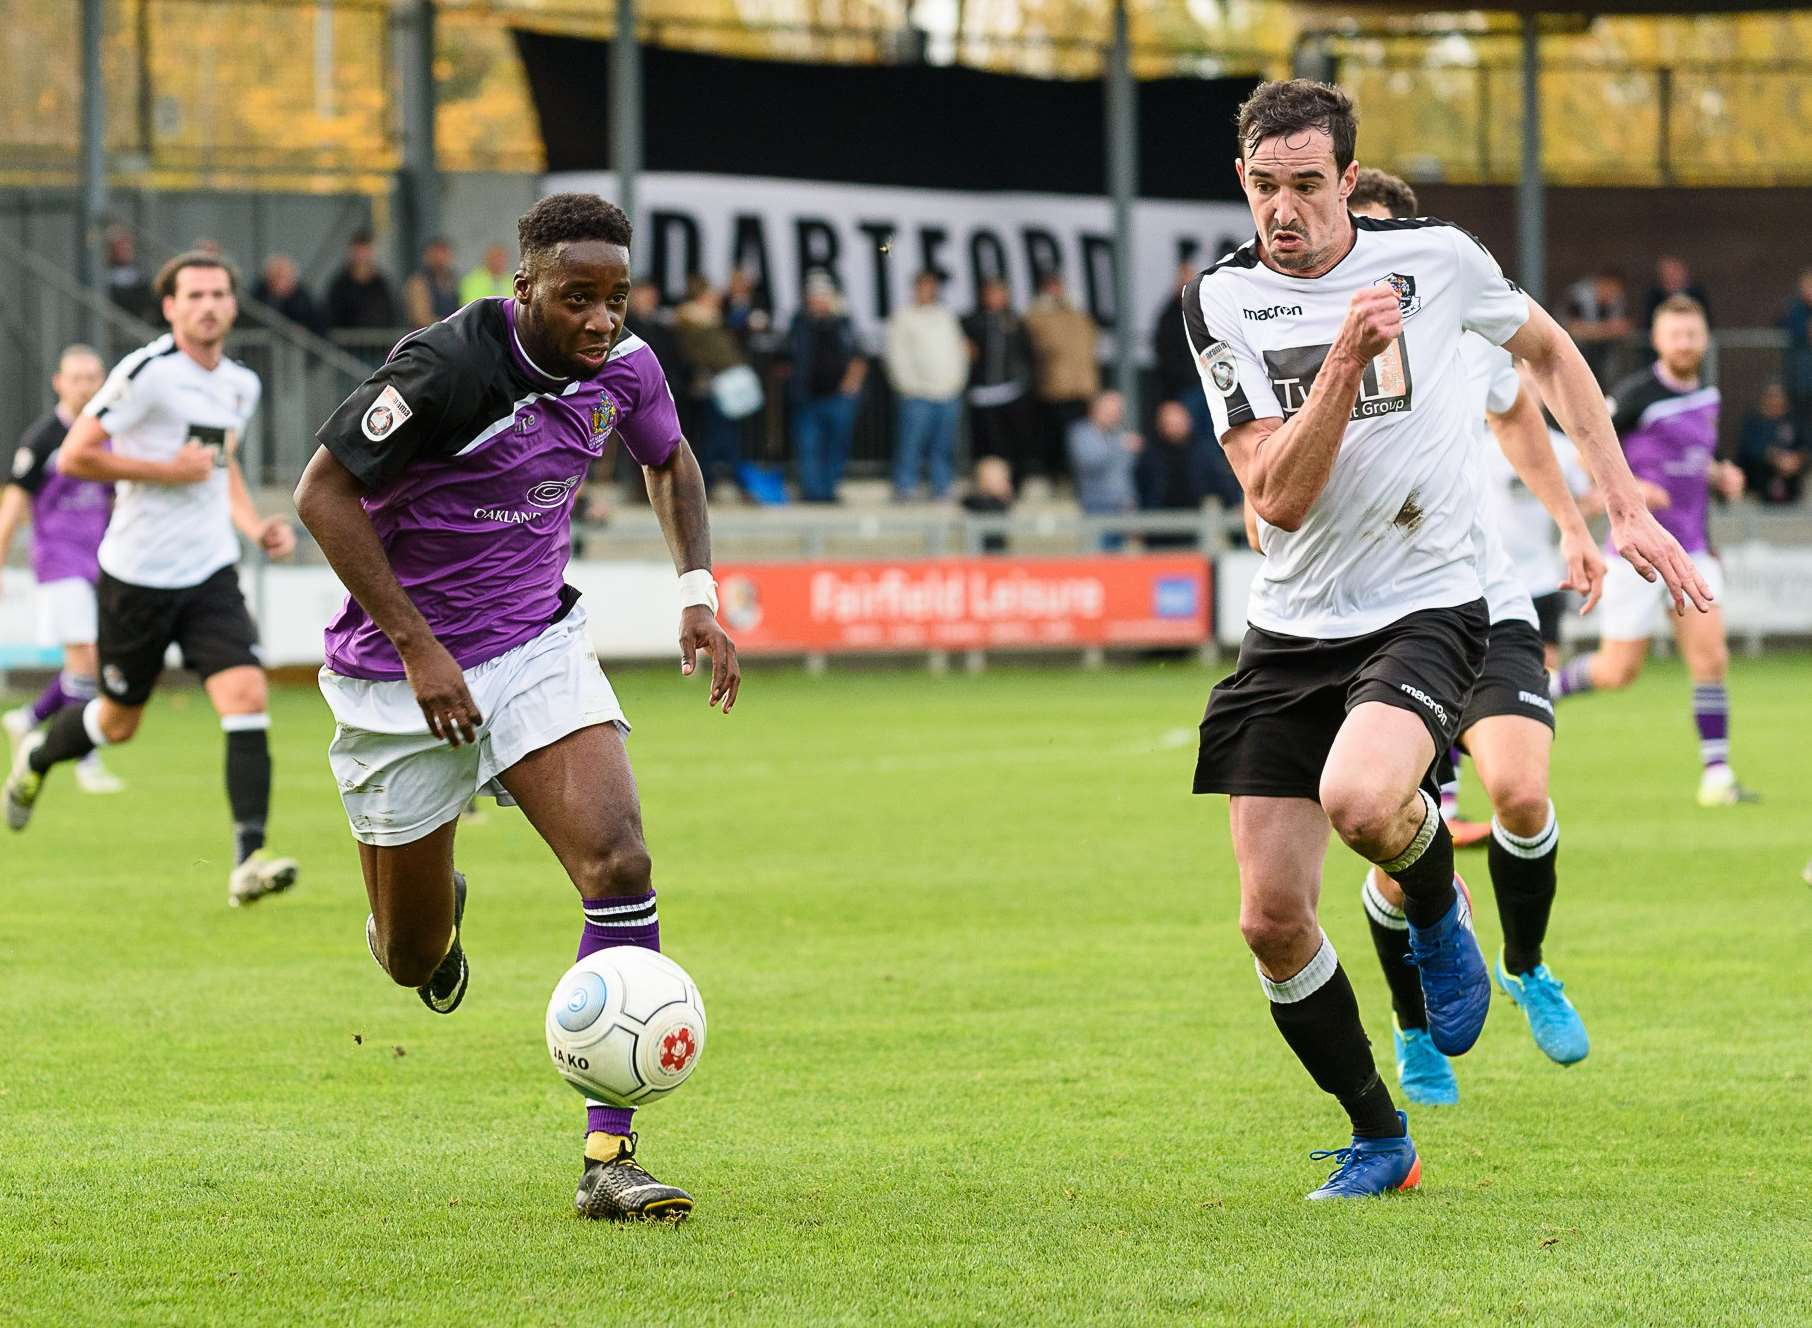 Action from Dartford's 2-1 win over St Albans Picture: Tony Jones